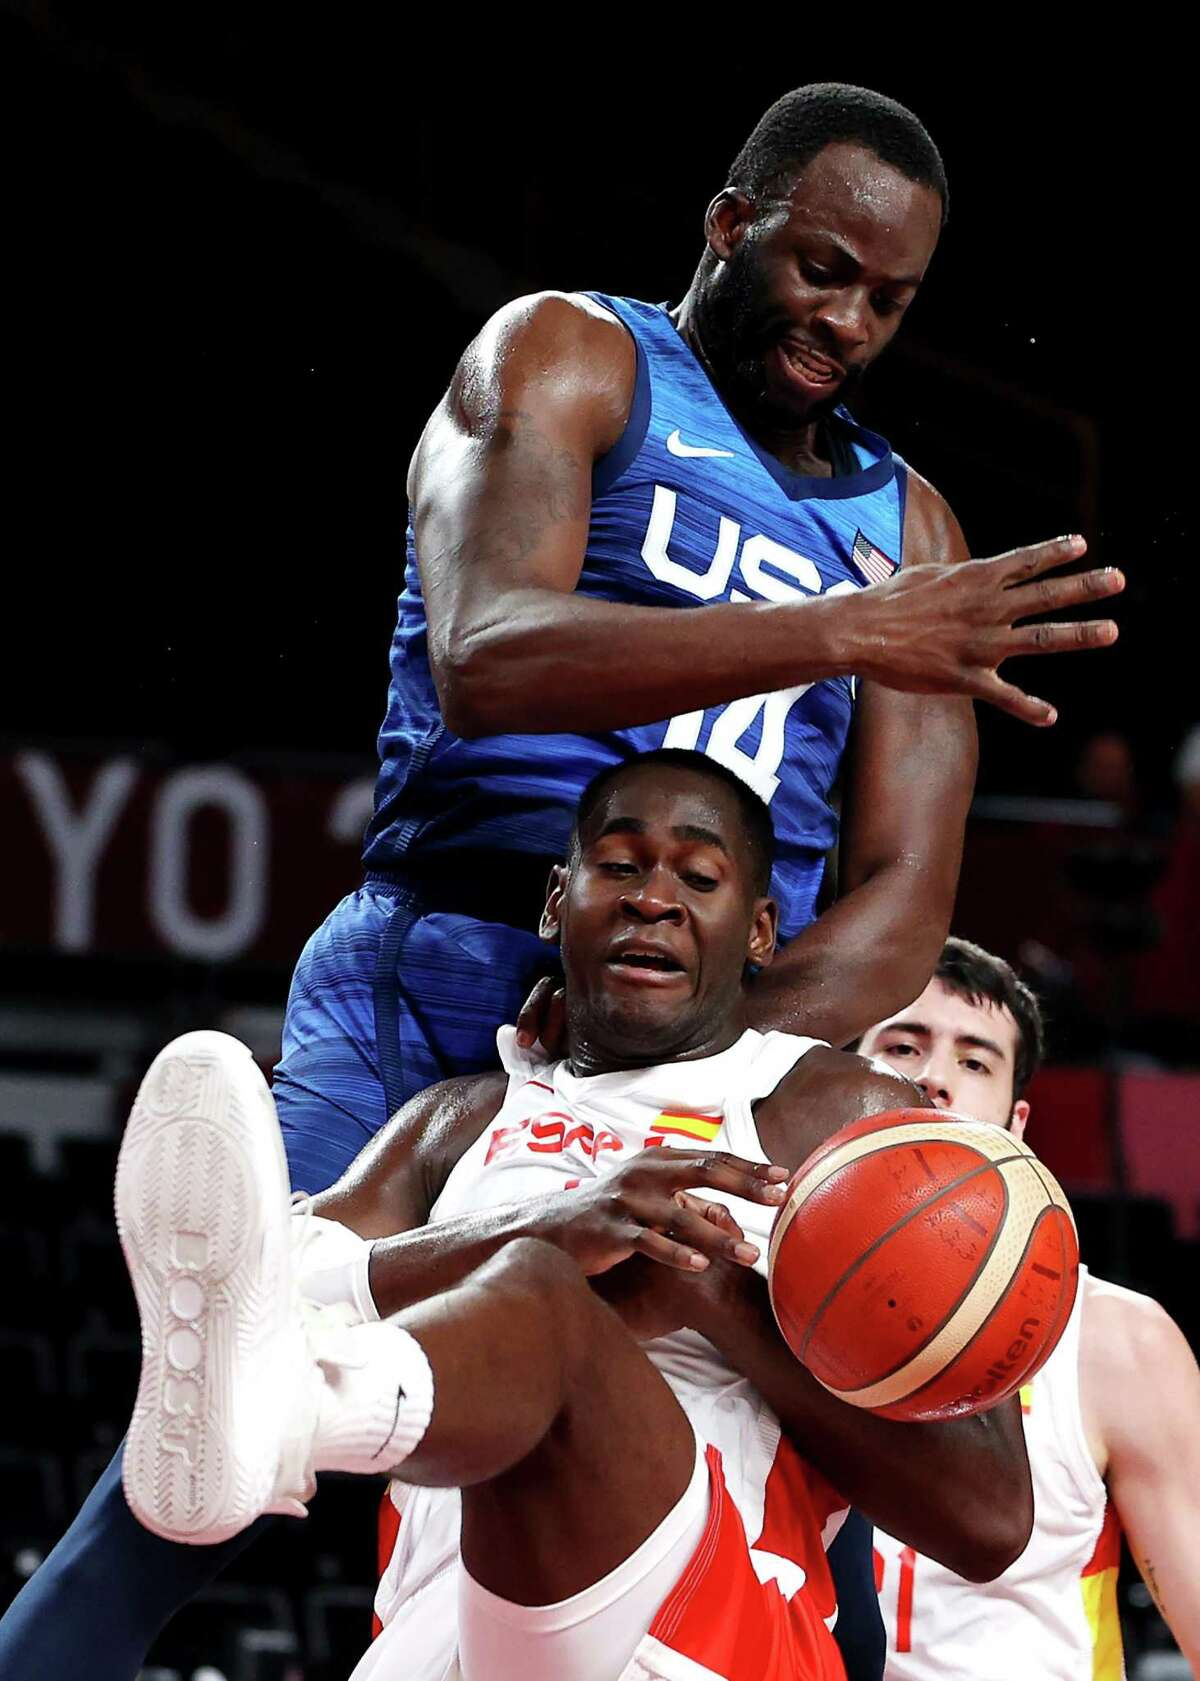 Draymond Green knocks the ball away from Spain's Usman Garuba during the second half of an Olympic quarterfinal basketball game. The Warriors' forward came off the bench to score four points, make two steals and collect a pair of assists.